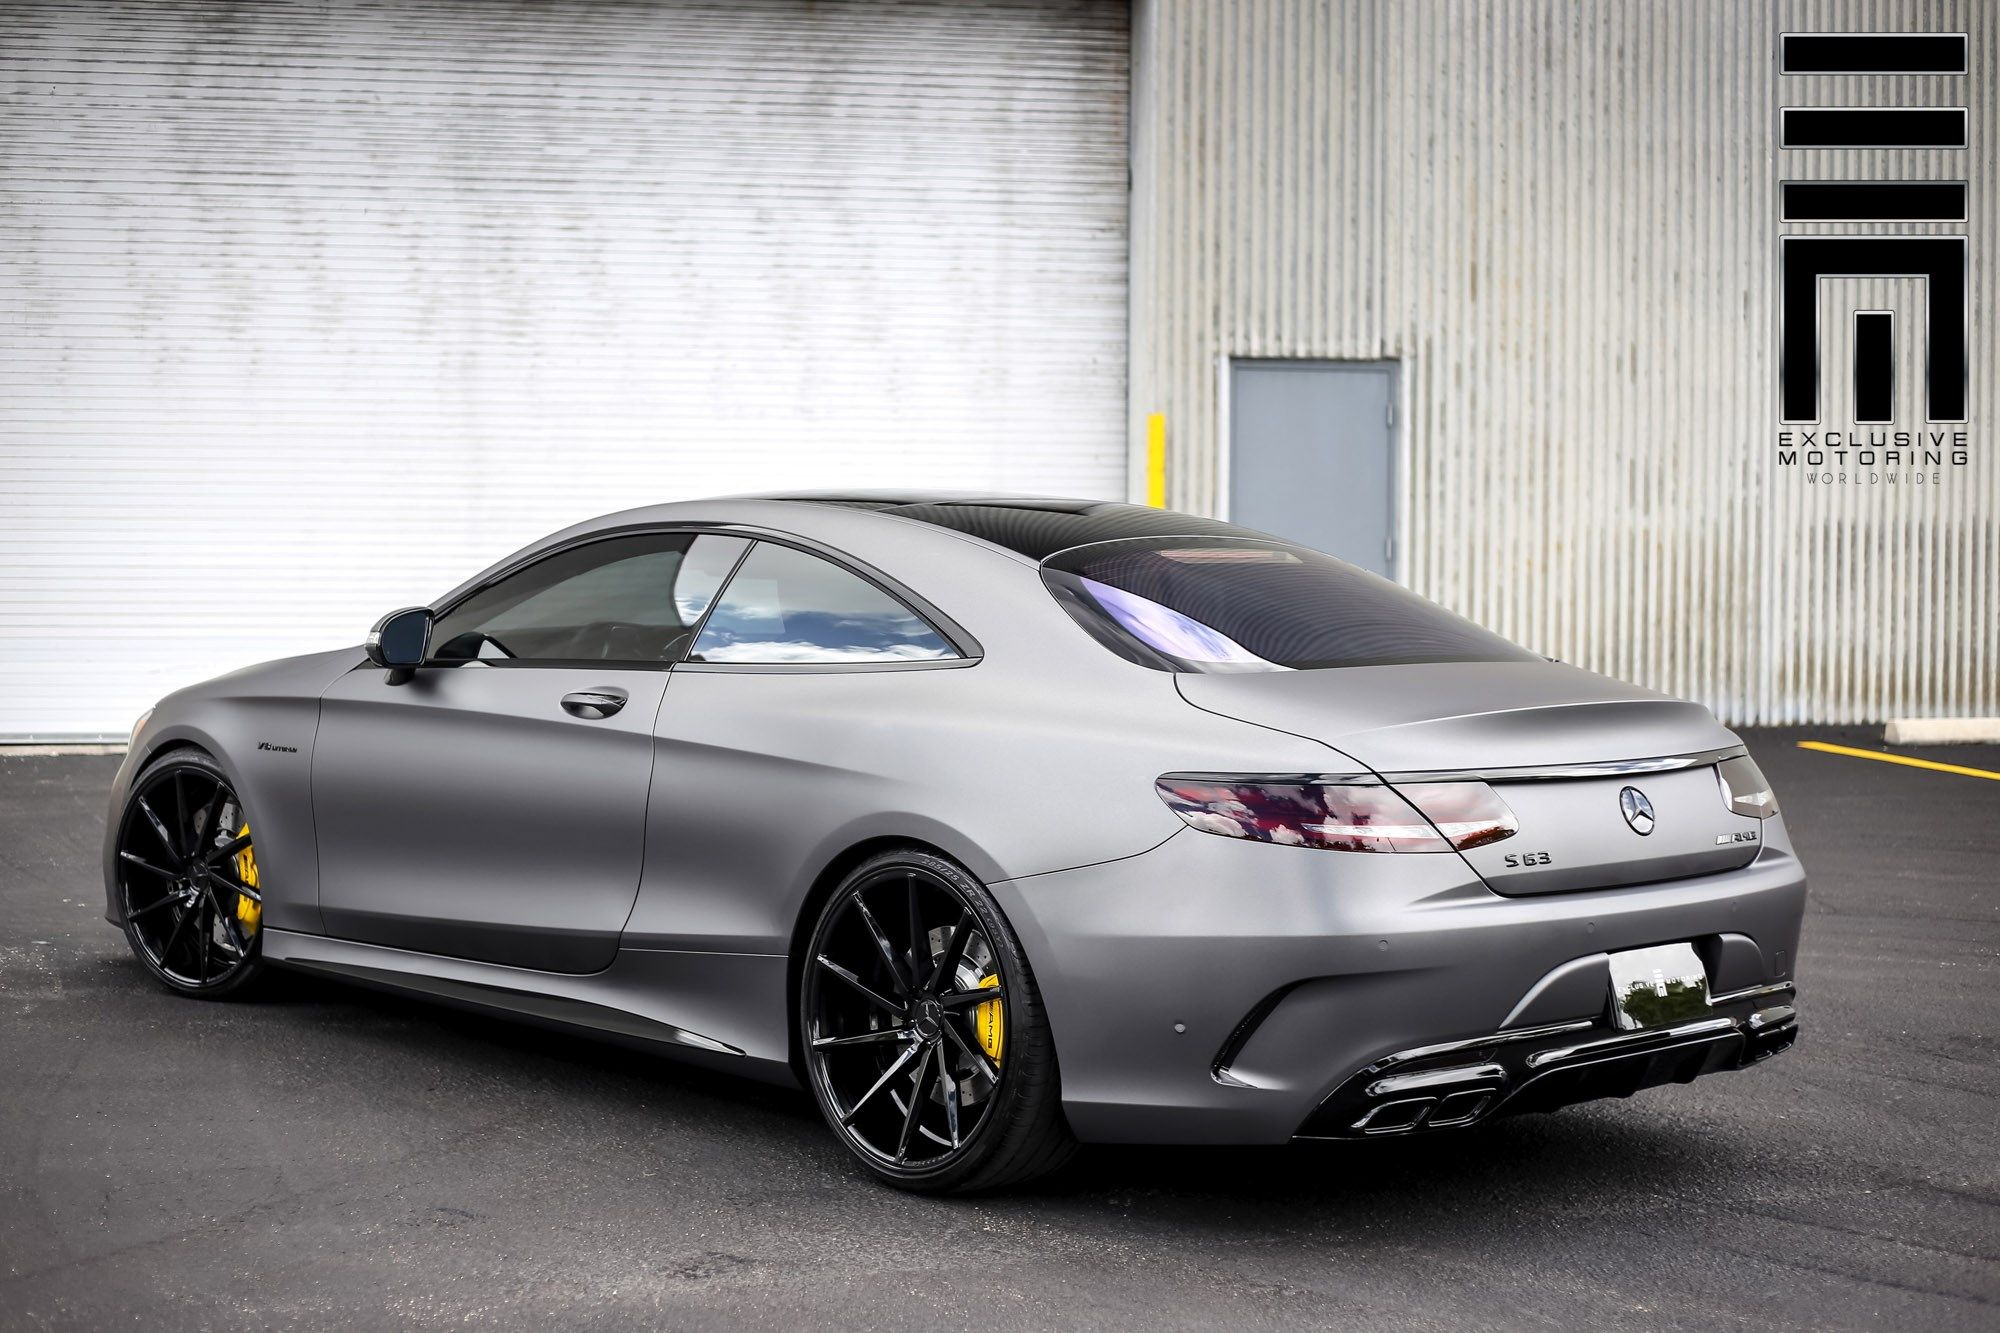 Mercedes Benz S Class Coupe Vossen Cvt With Images Mercedes